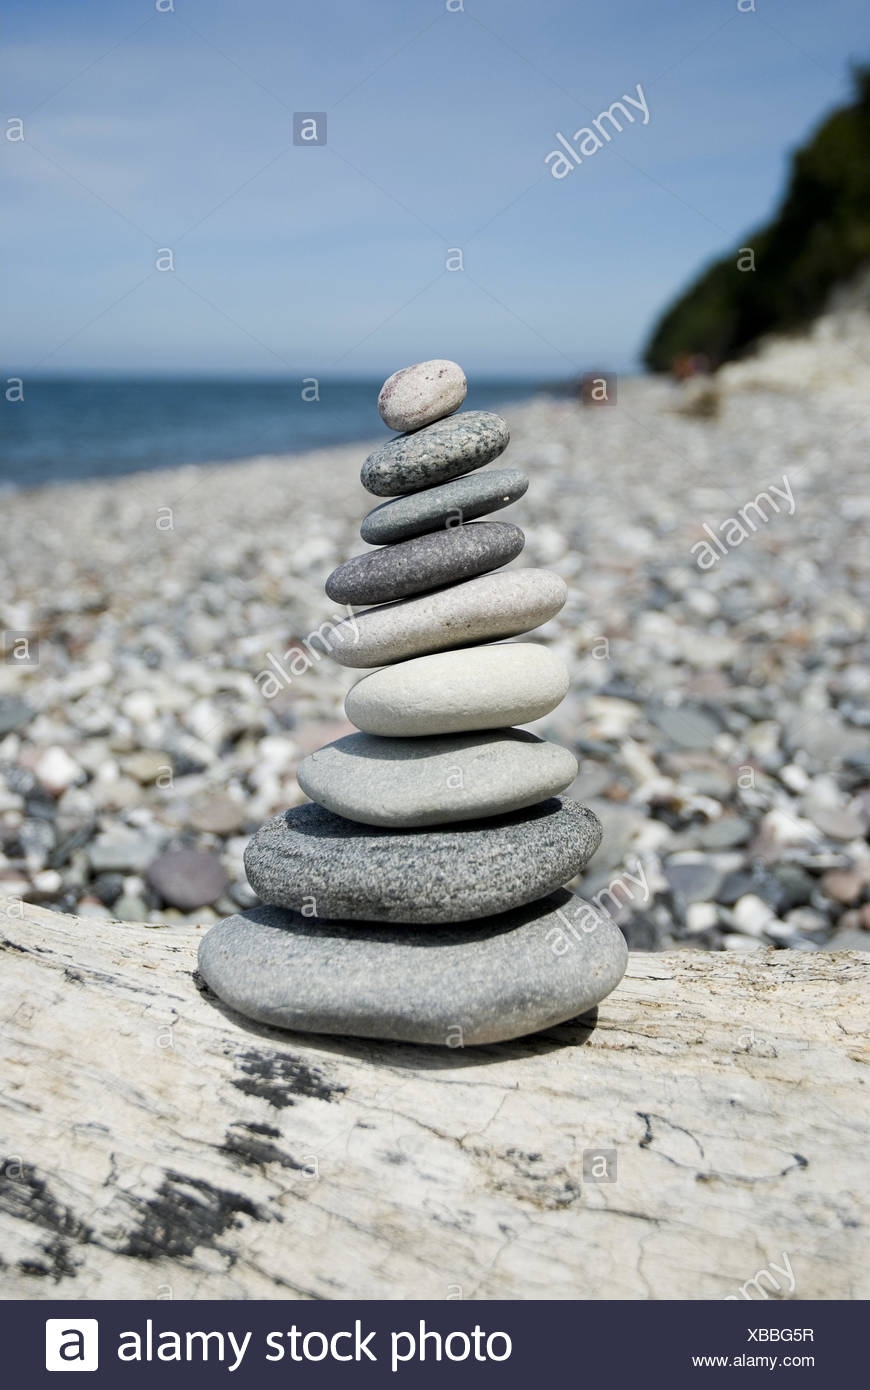 Stone tower on the beach, beach, stone tower, stones, tower, piled up, beach, stacked, the Baltic Sea, Rügen, North Germany, Germany, stony, rest, sea, batch, balance, level, stone little men, selection, road character, - Stock Image